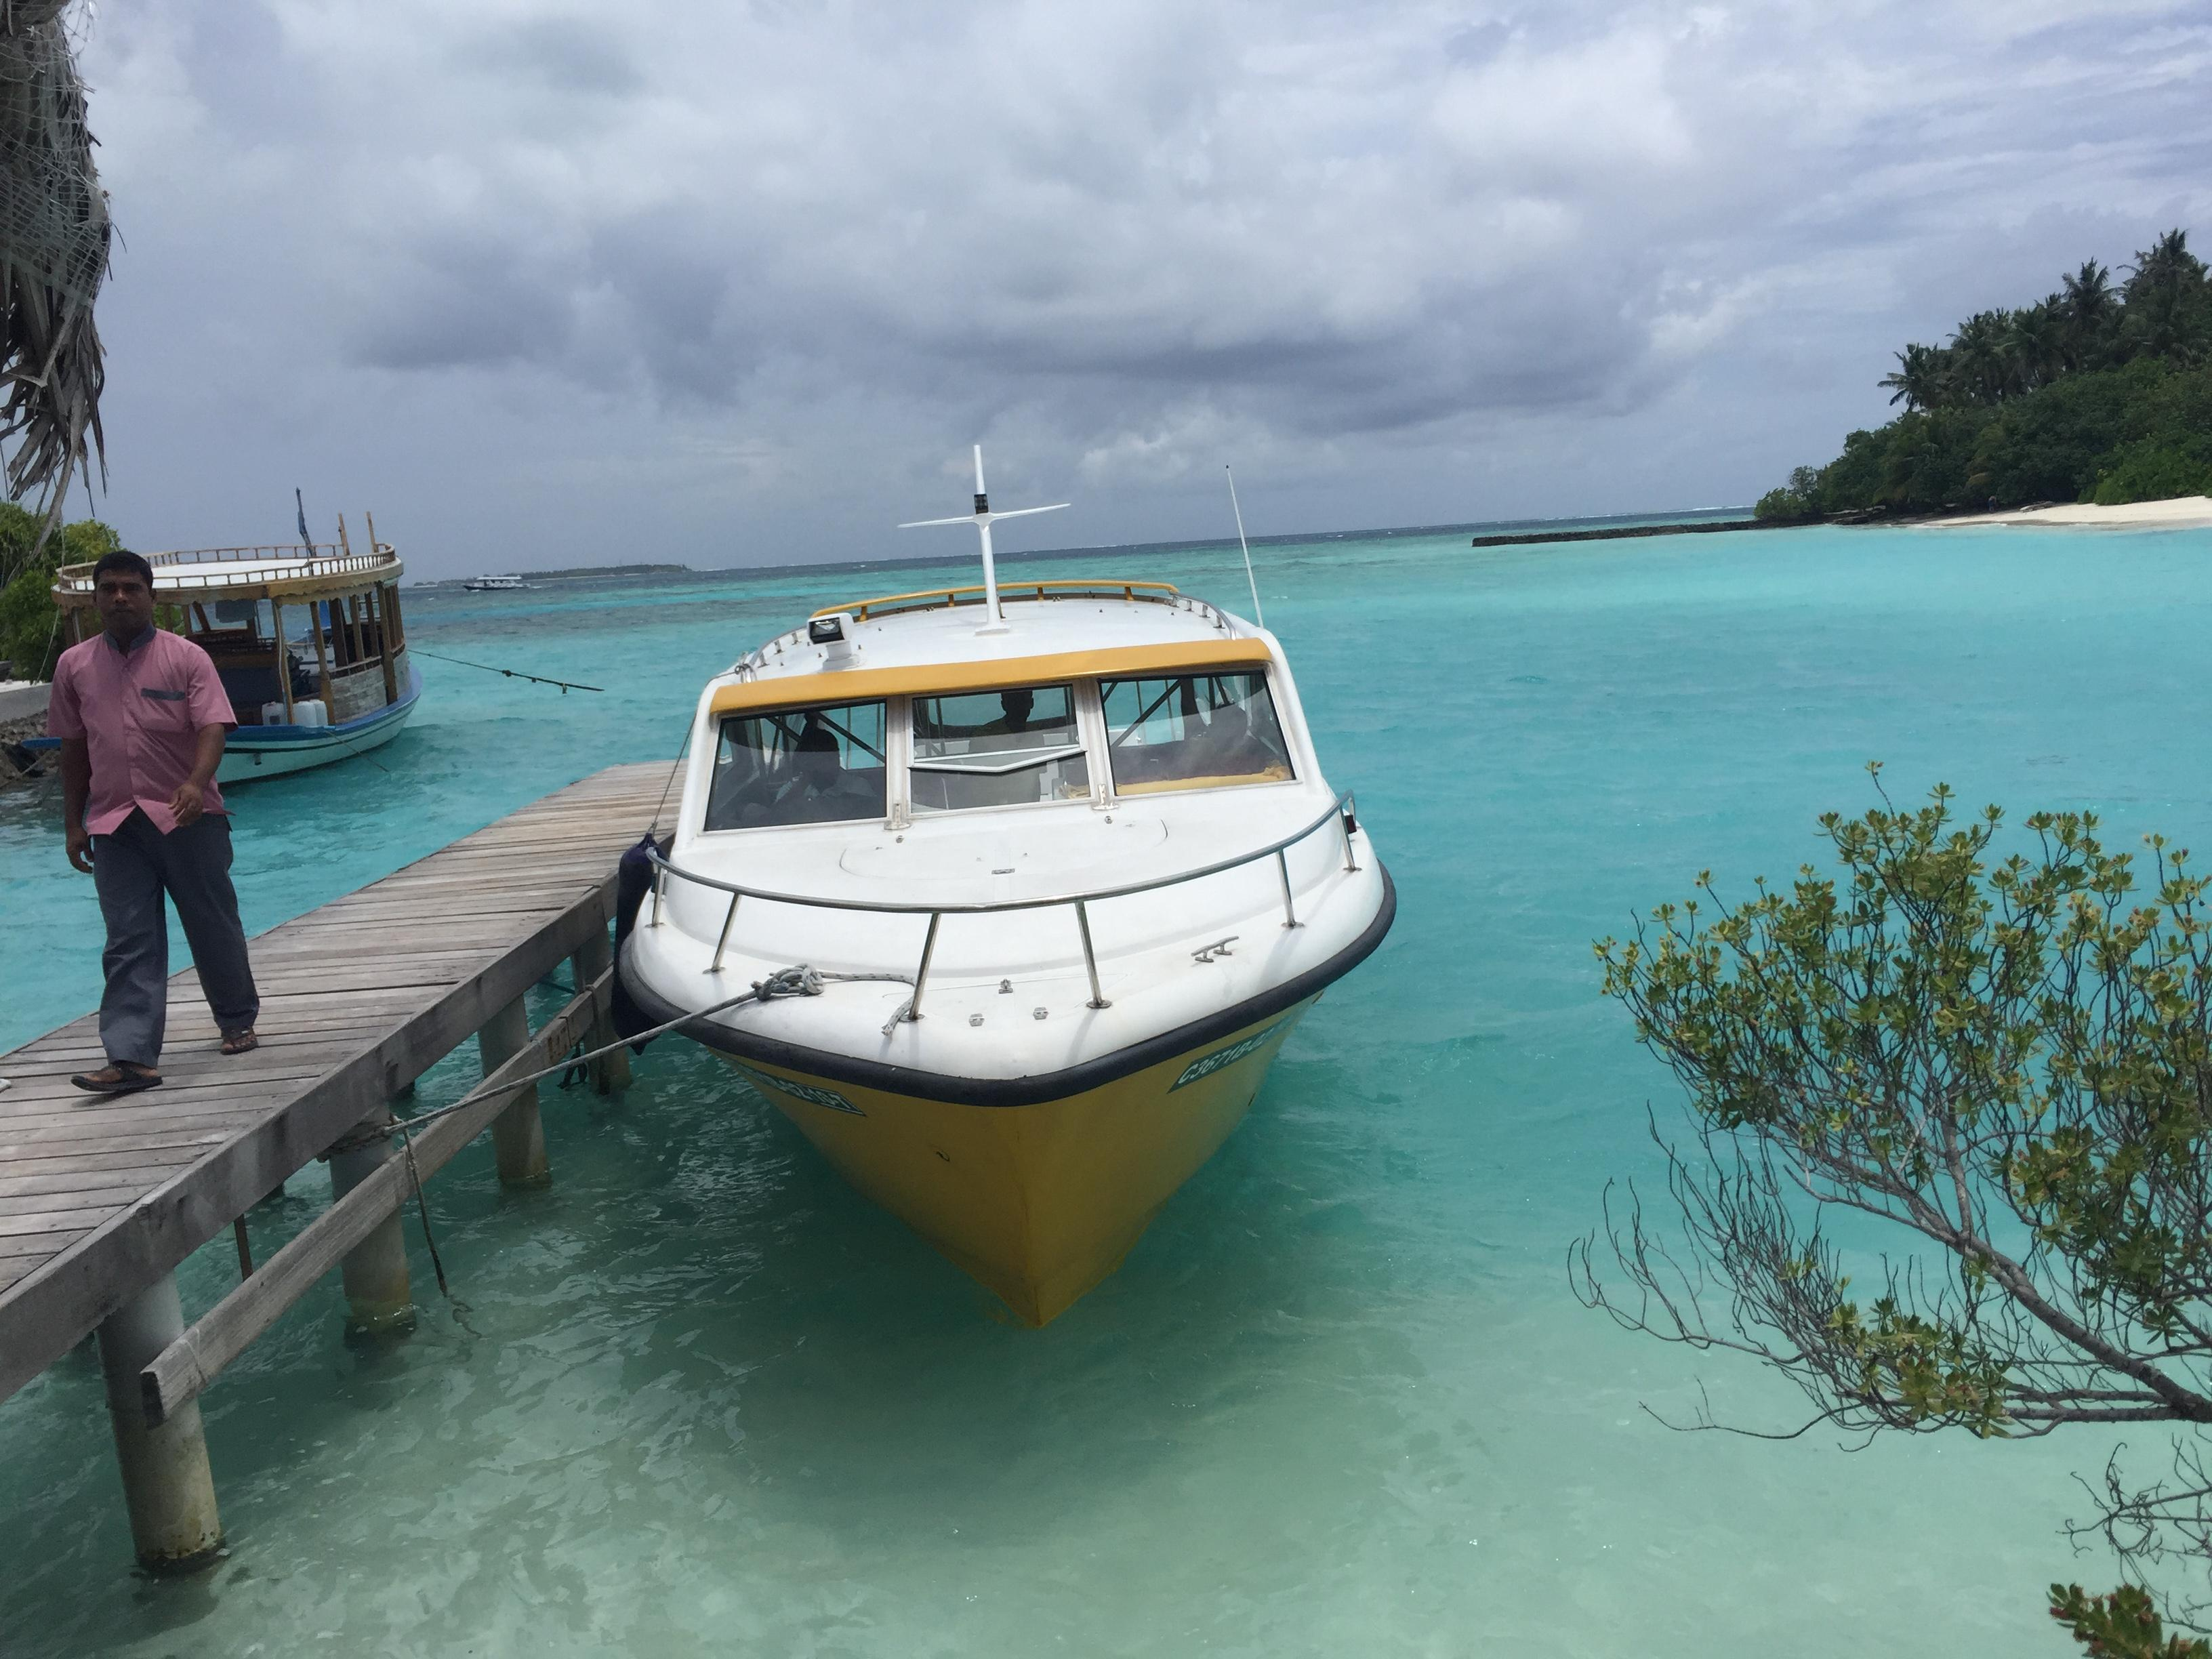 Your boat transportation to the island